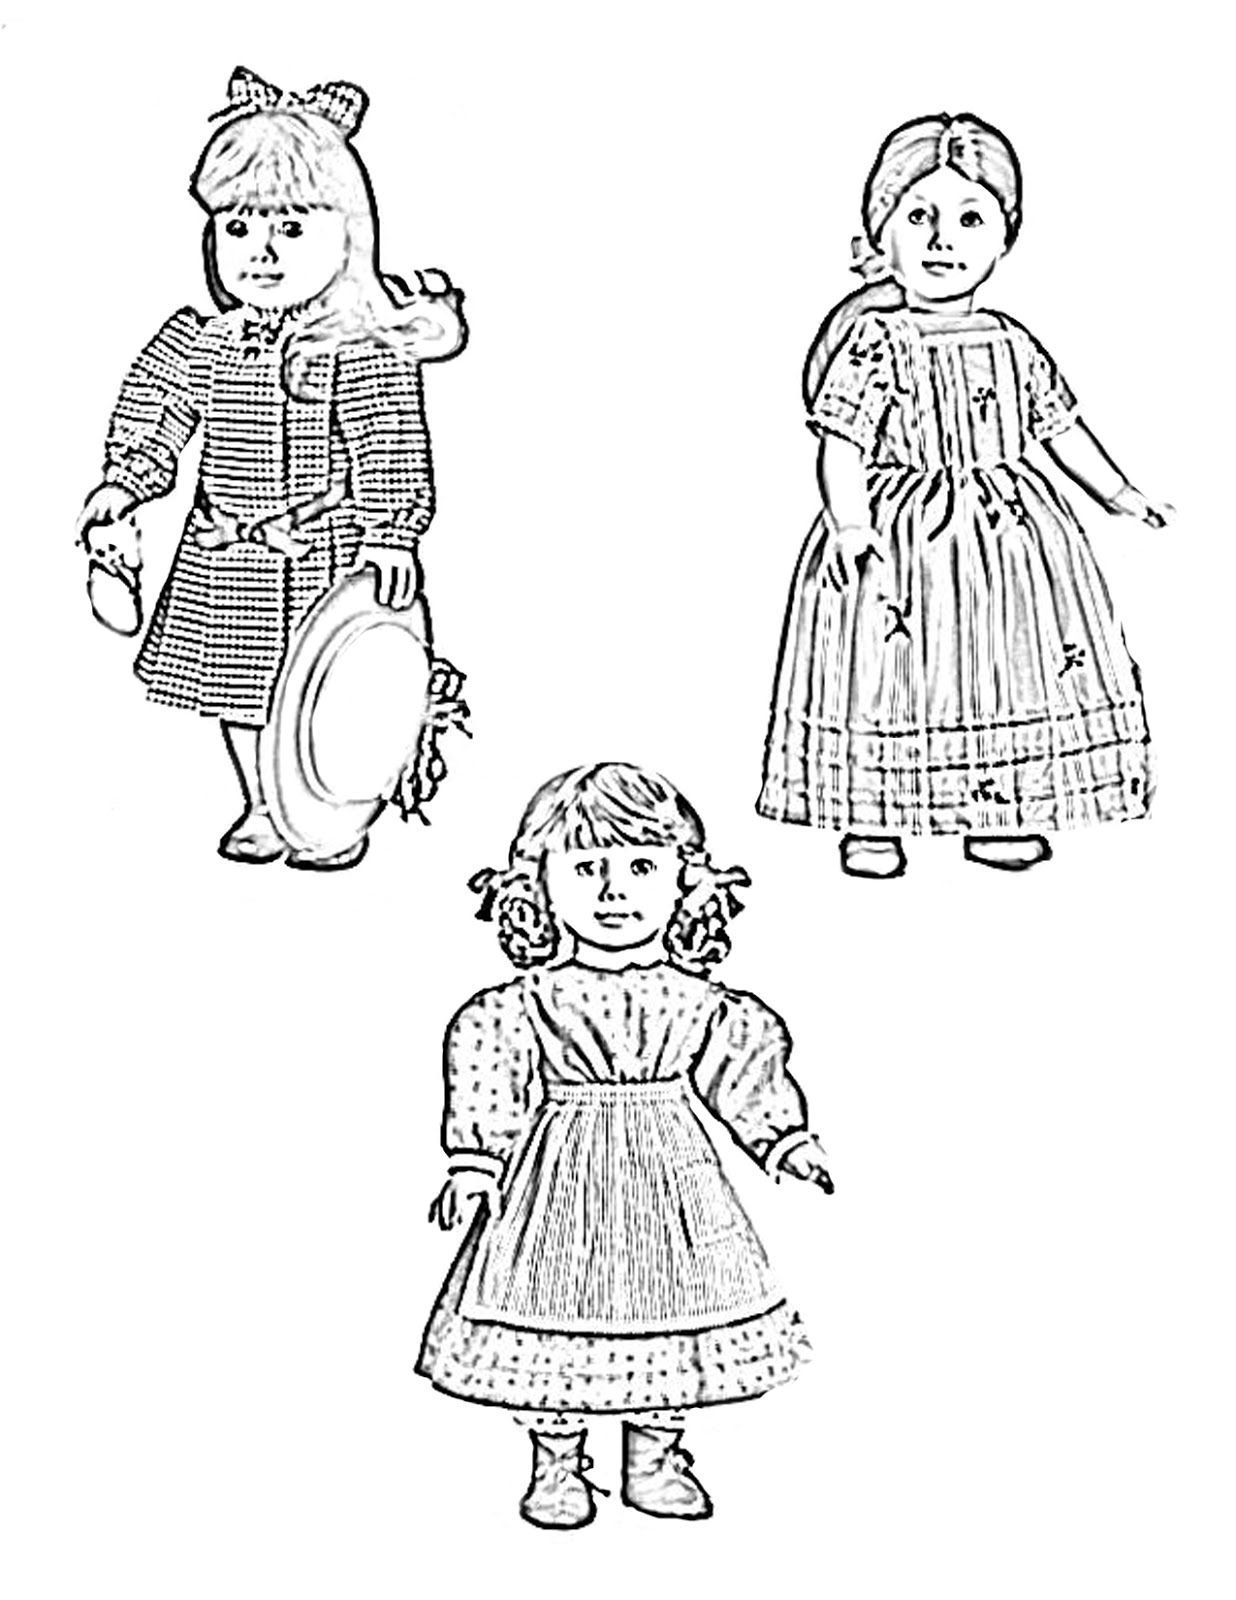 American Doll Accessories Coloring Pages - Coloring Pages For All Ages